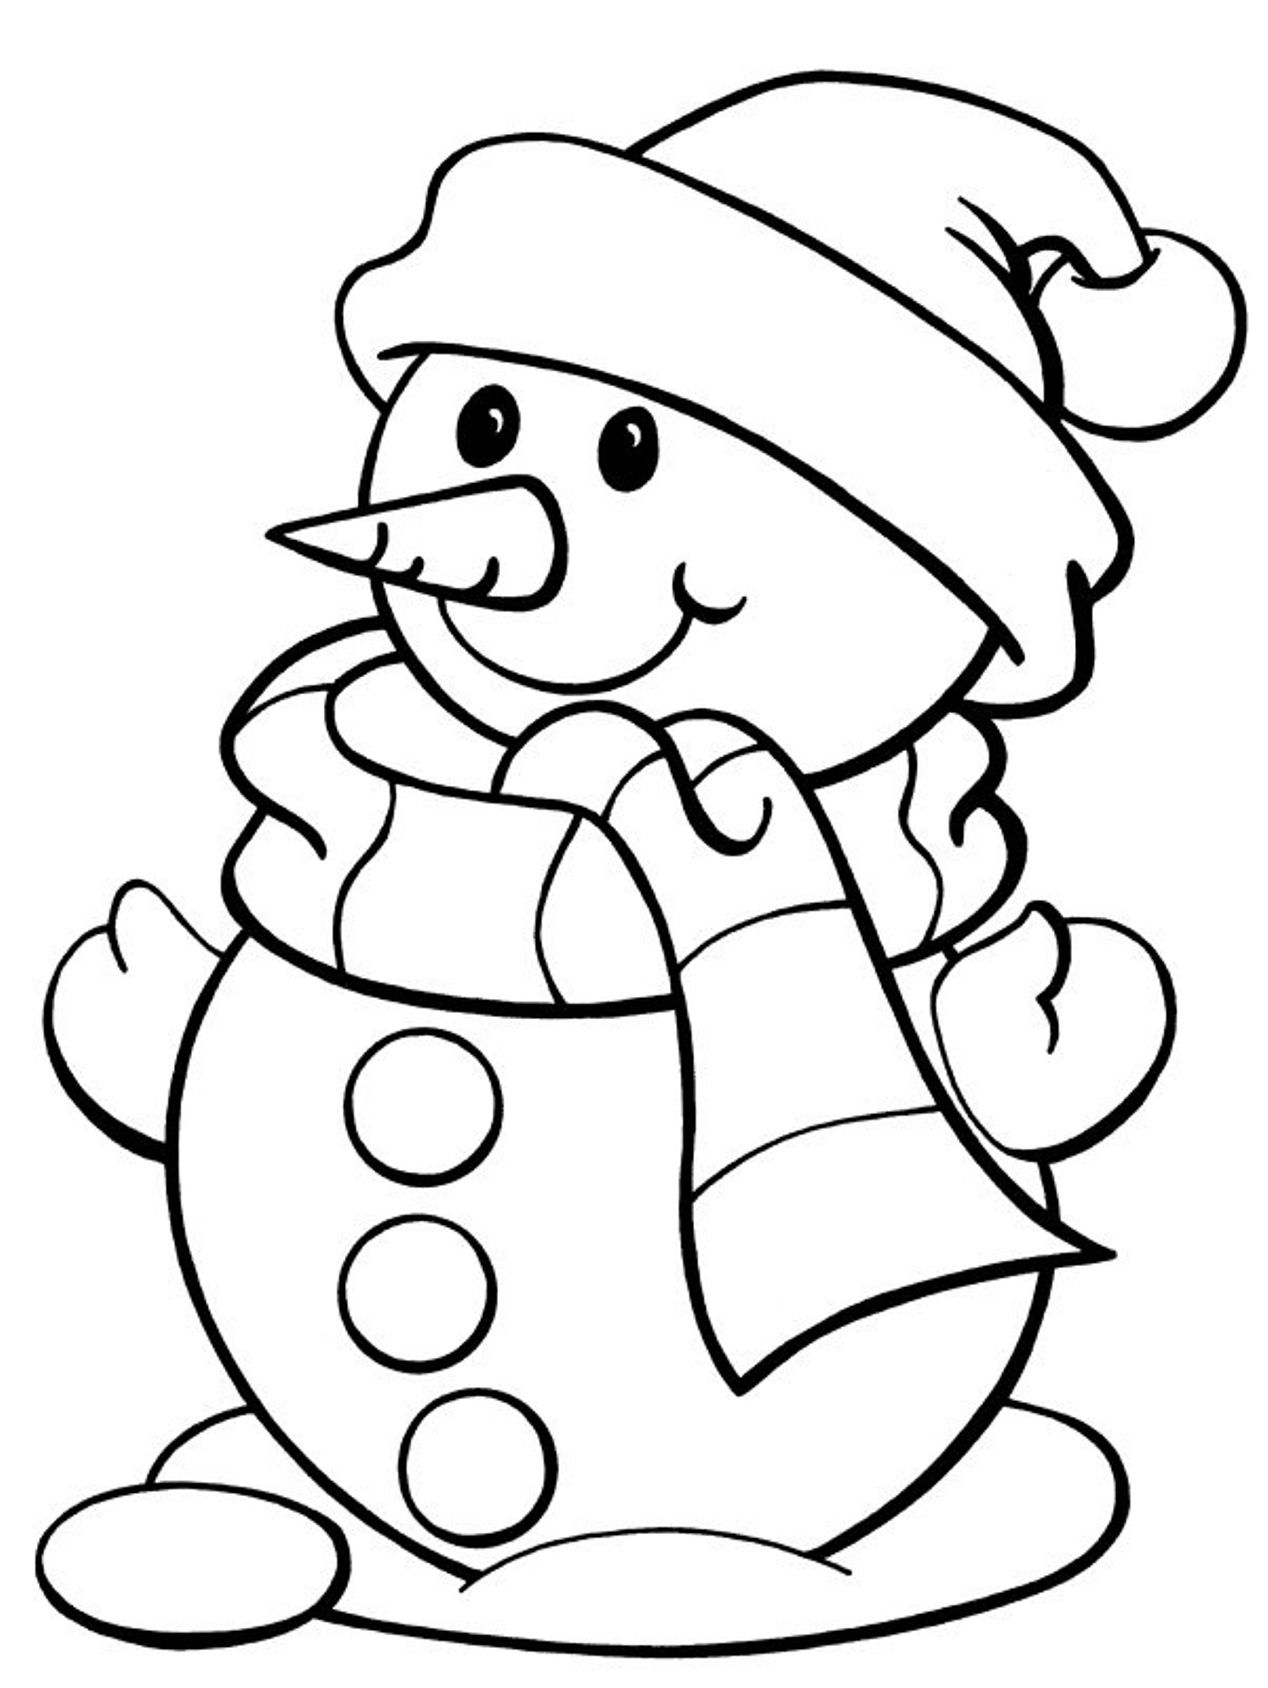 Winter Coloring Snowman Coloring Pages Winter Free Snowman Coloring Pages Winter Freefull Size